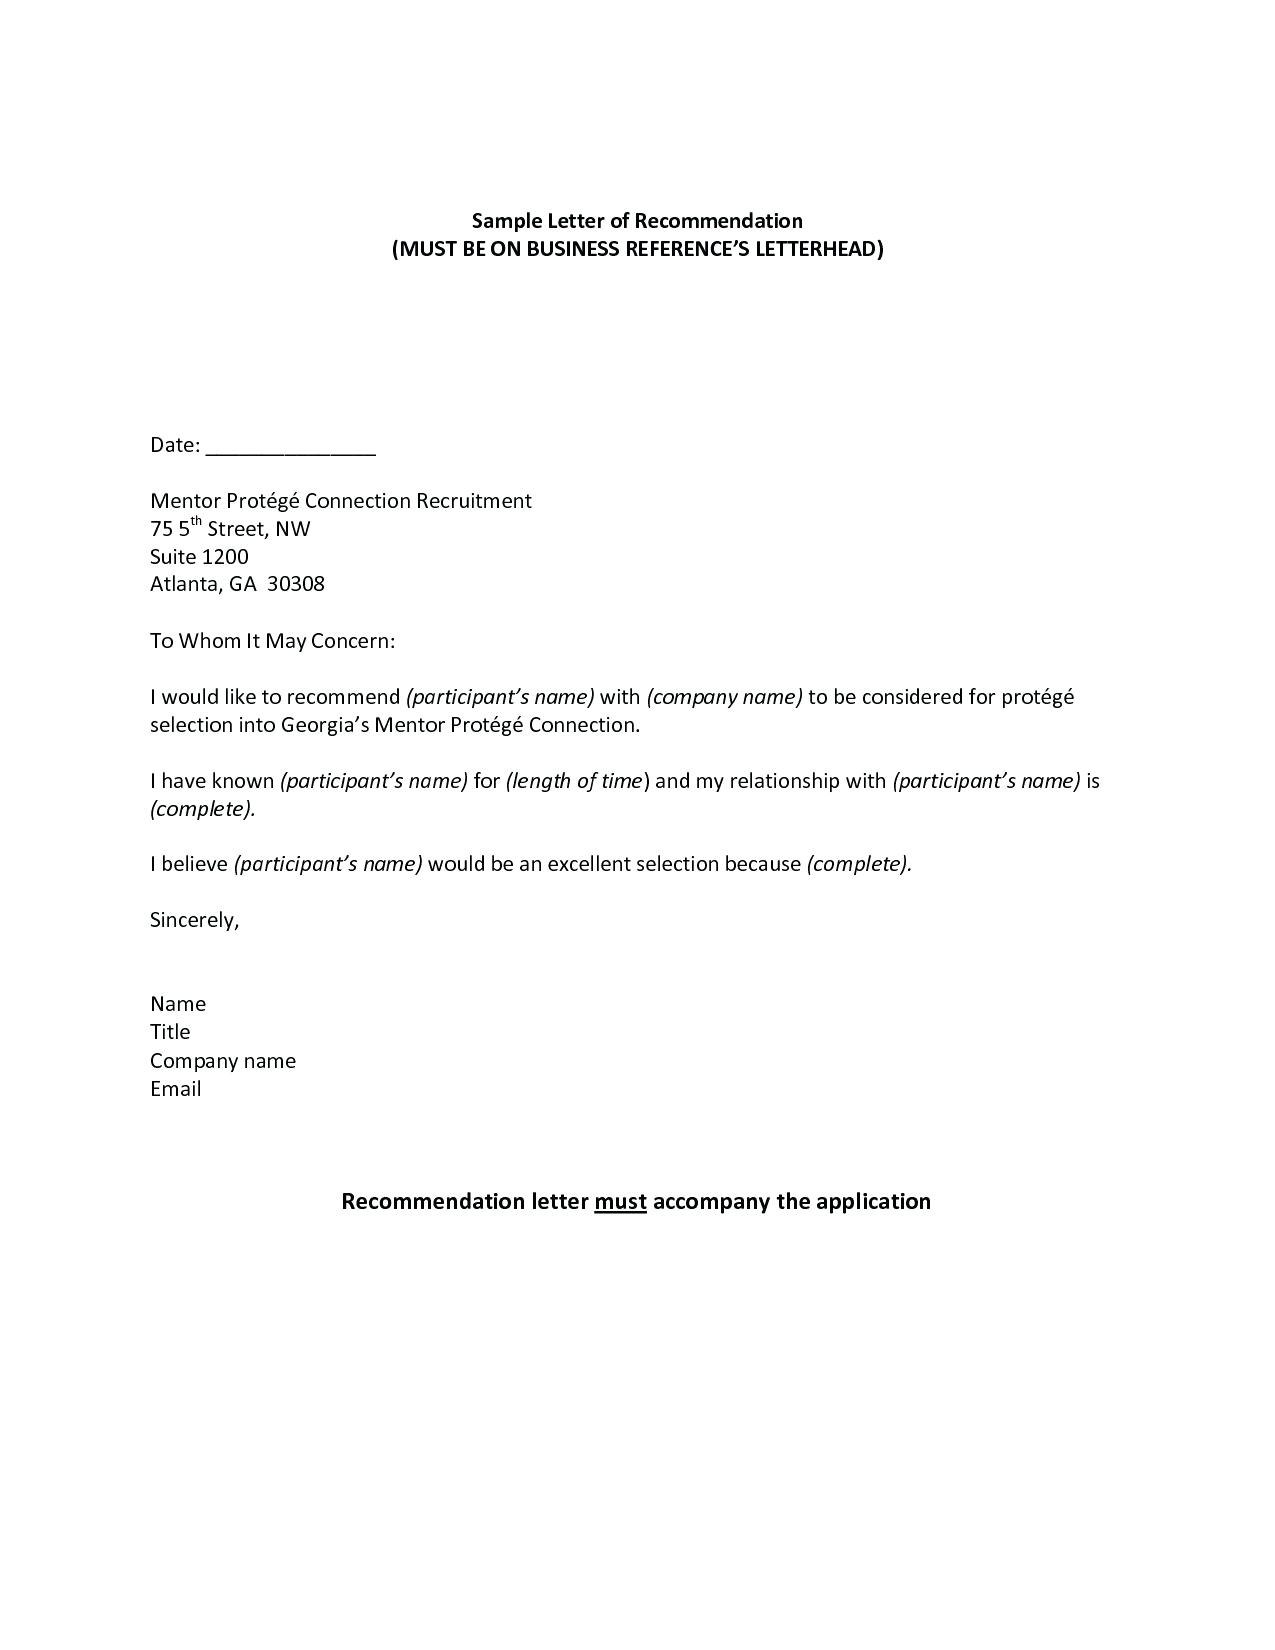 Mortgage Reference Letter From Employer Template Samples  Letter Regarding Mortgage Letter Templates